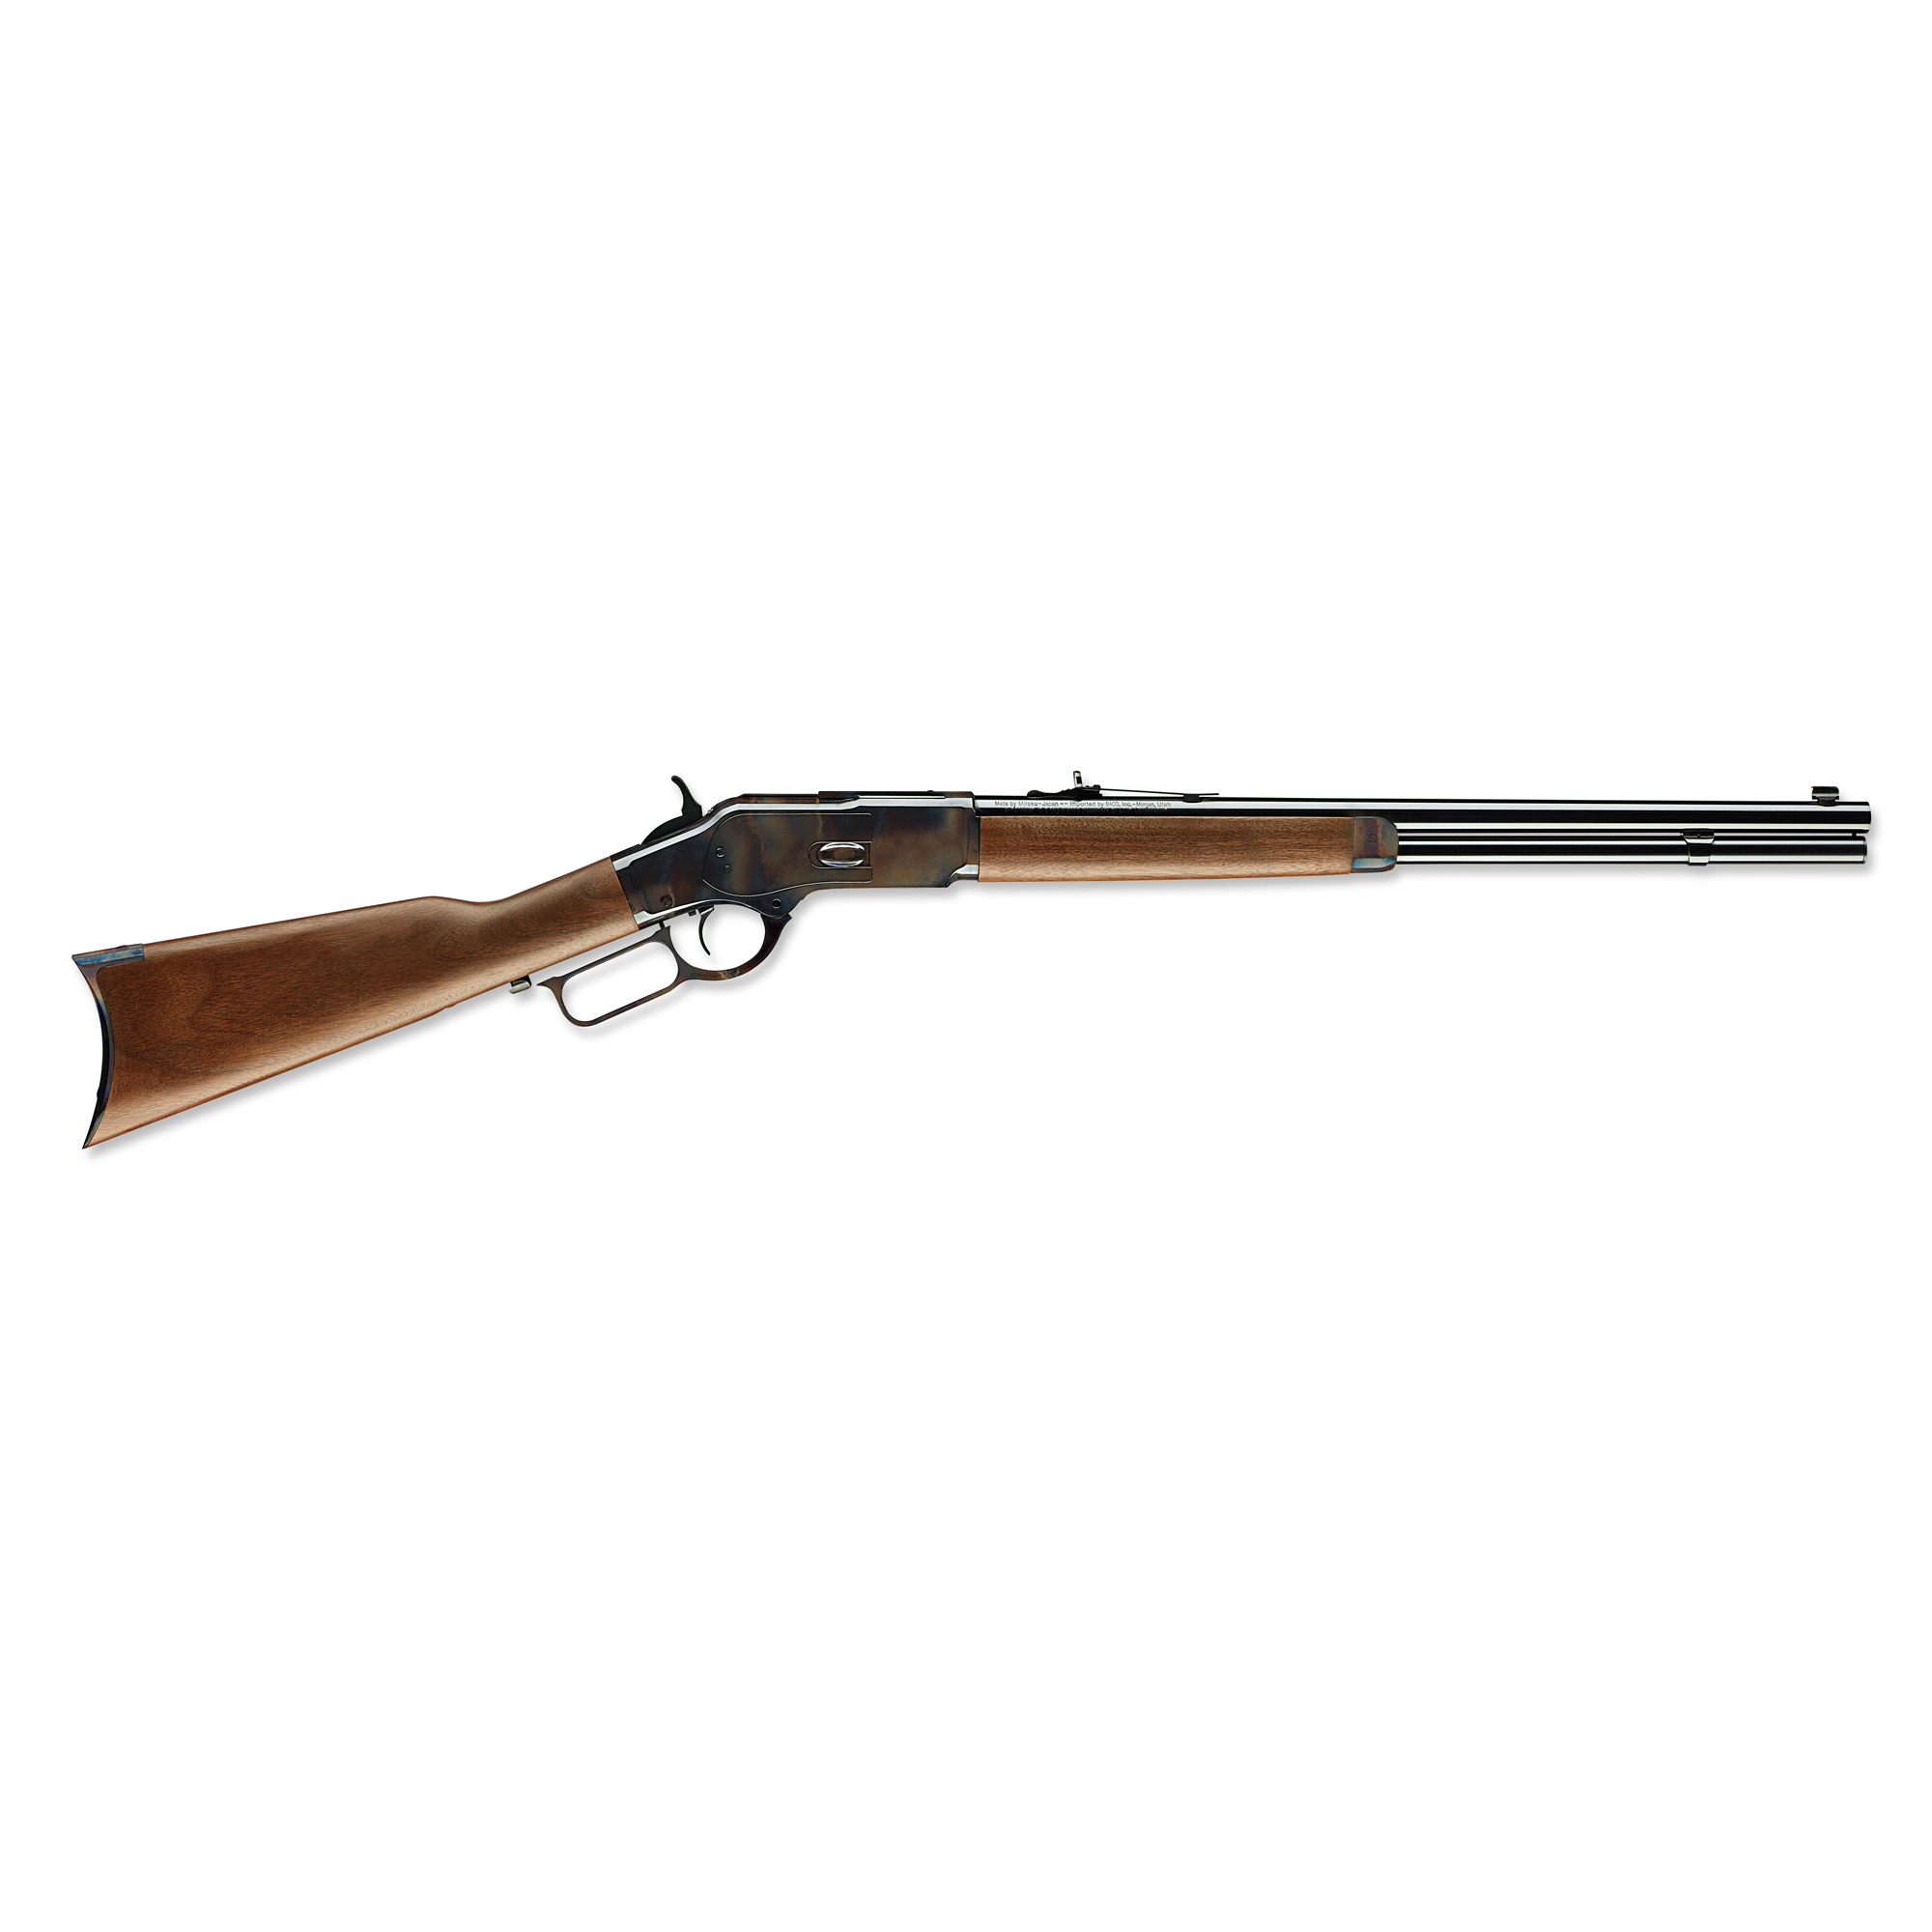 """The gun that won the West. The Model 73 is world-renowned as """"The Gun that Won the West."""" Now you can own the real thing - a genuine Winchester Repeating Arms(R) Model 73. Several features of the Model 1873 are what set it apart over 140 years ago"""" and still make it a very cool rifle to shoot today."""